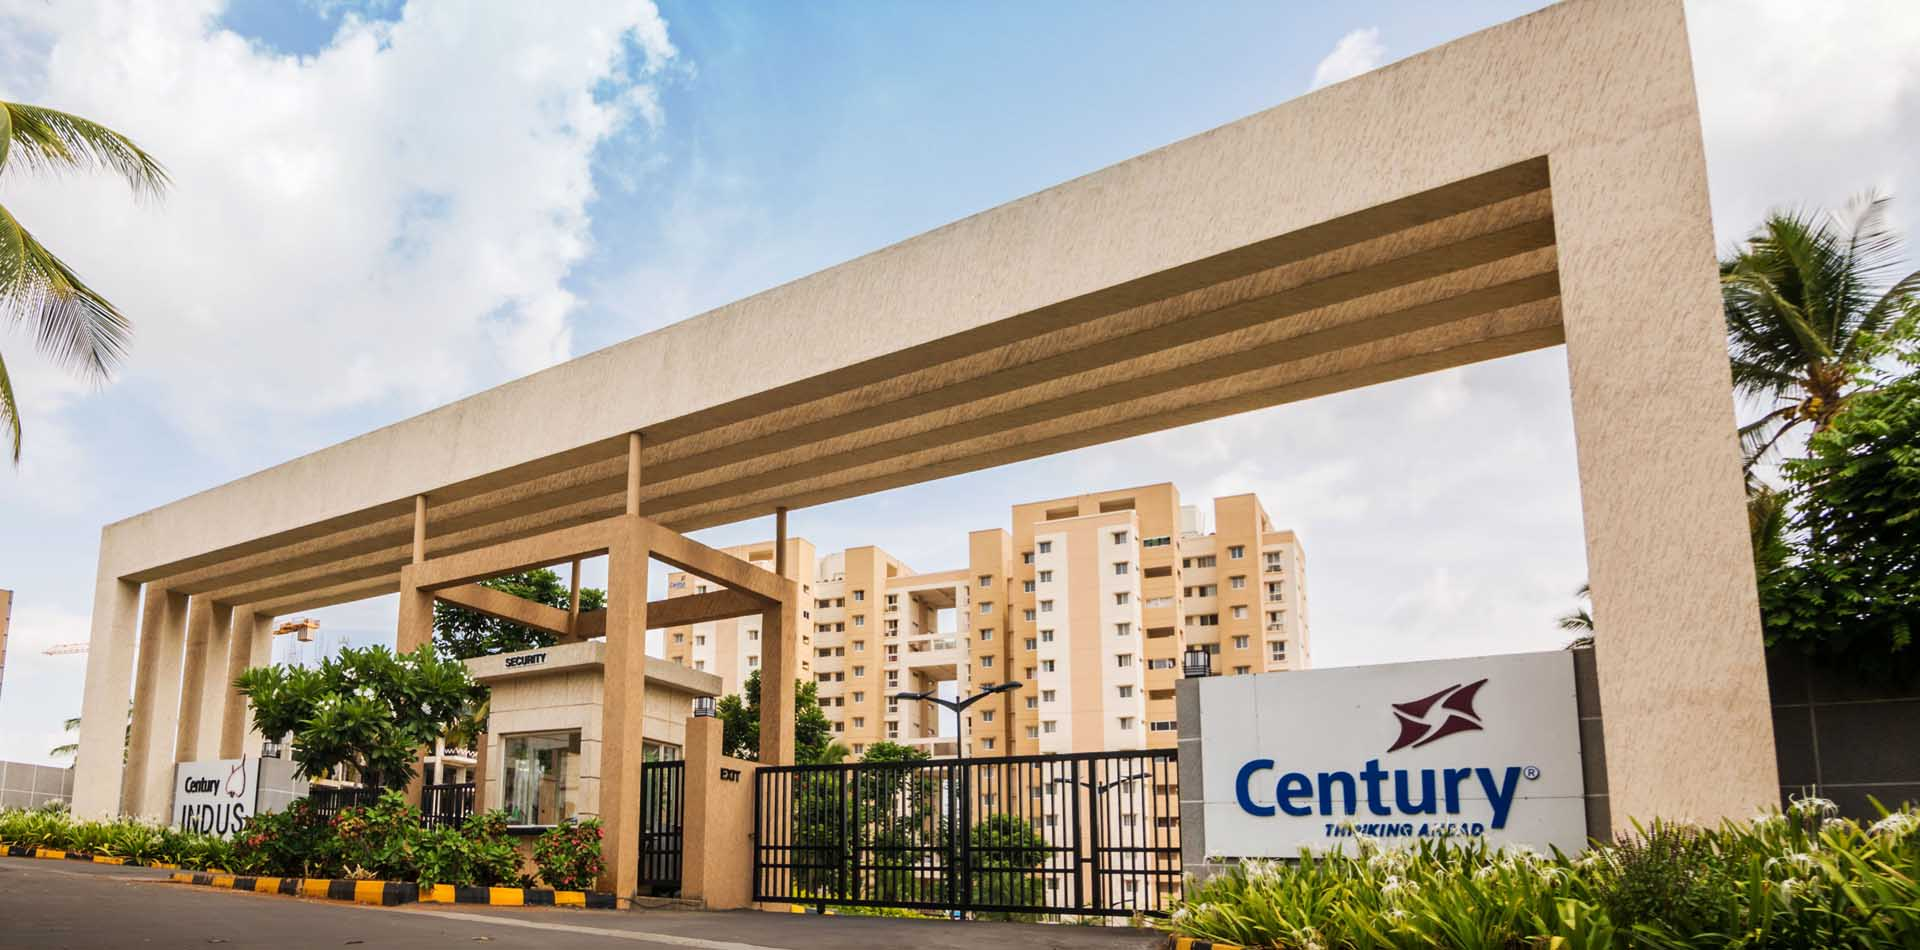 Century Indus Phase 2 Is The Only Apartments For Sale In Rajarajeshwari  Nagar With 80 Open